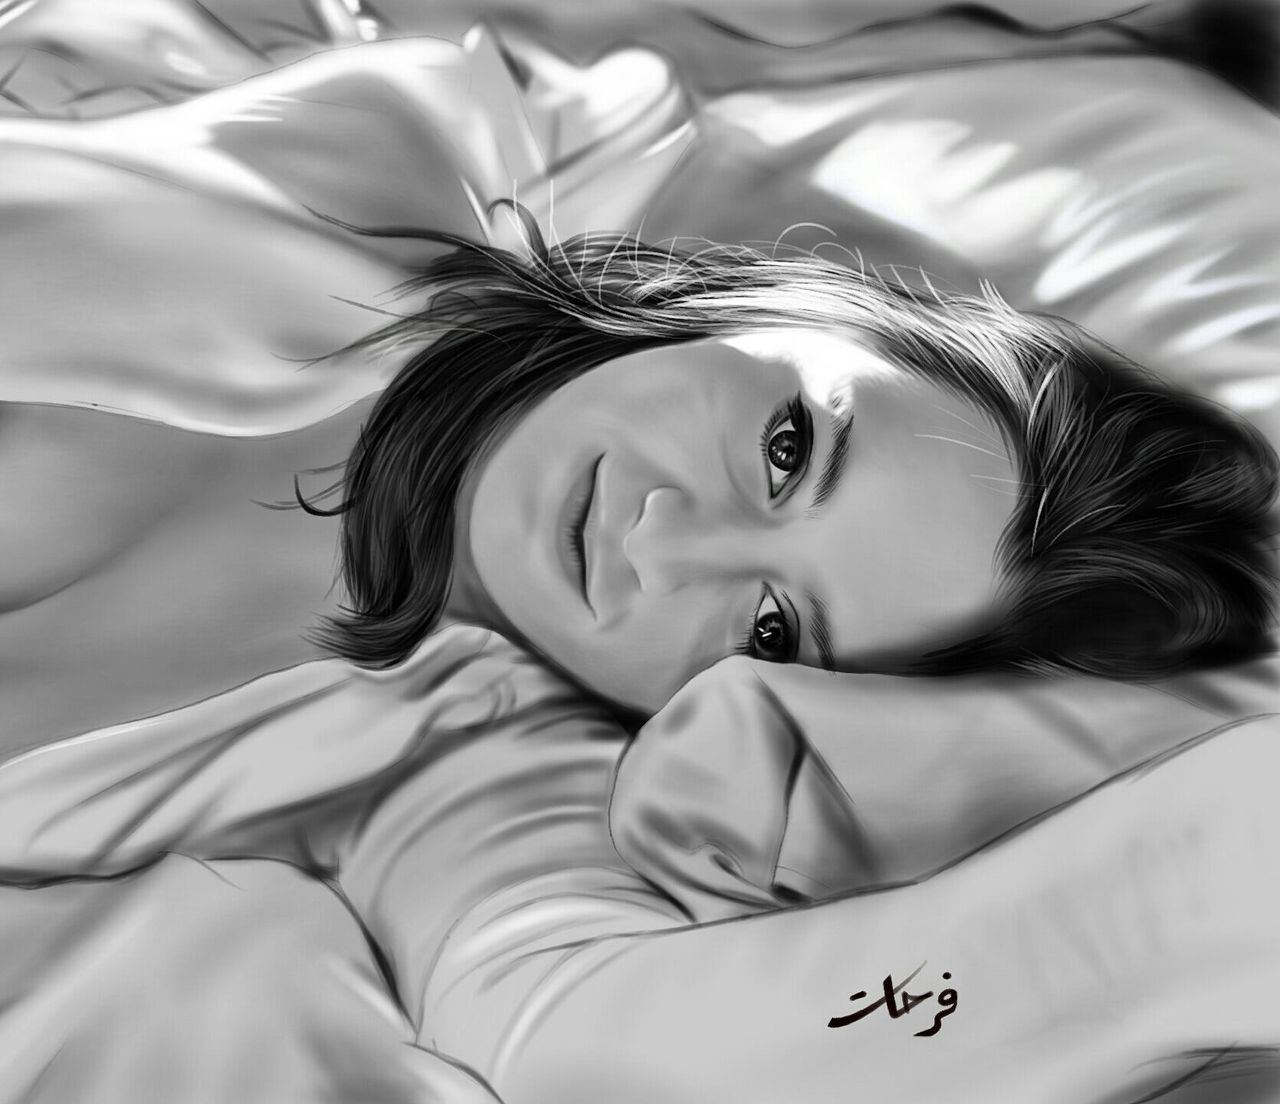 Angel Beautiful Beauty Bed Girl Girlfriend Hair Hot Lady Light Love Lovely Morning Morning Light People Portrait Sexygirl Shadow Sketch Sketching Sleepy Smile Summer Sweetheart Young Adult First Eyeem Photo